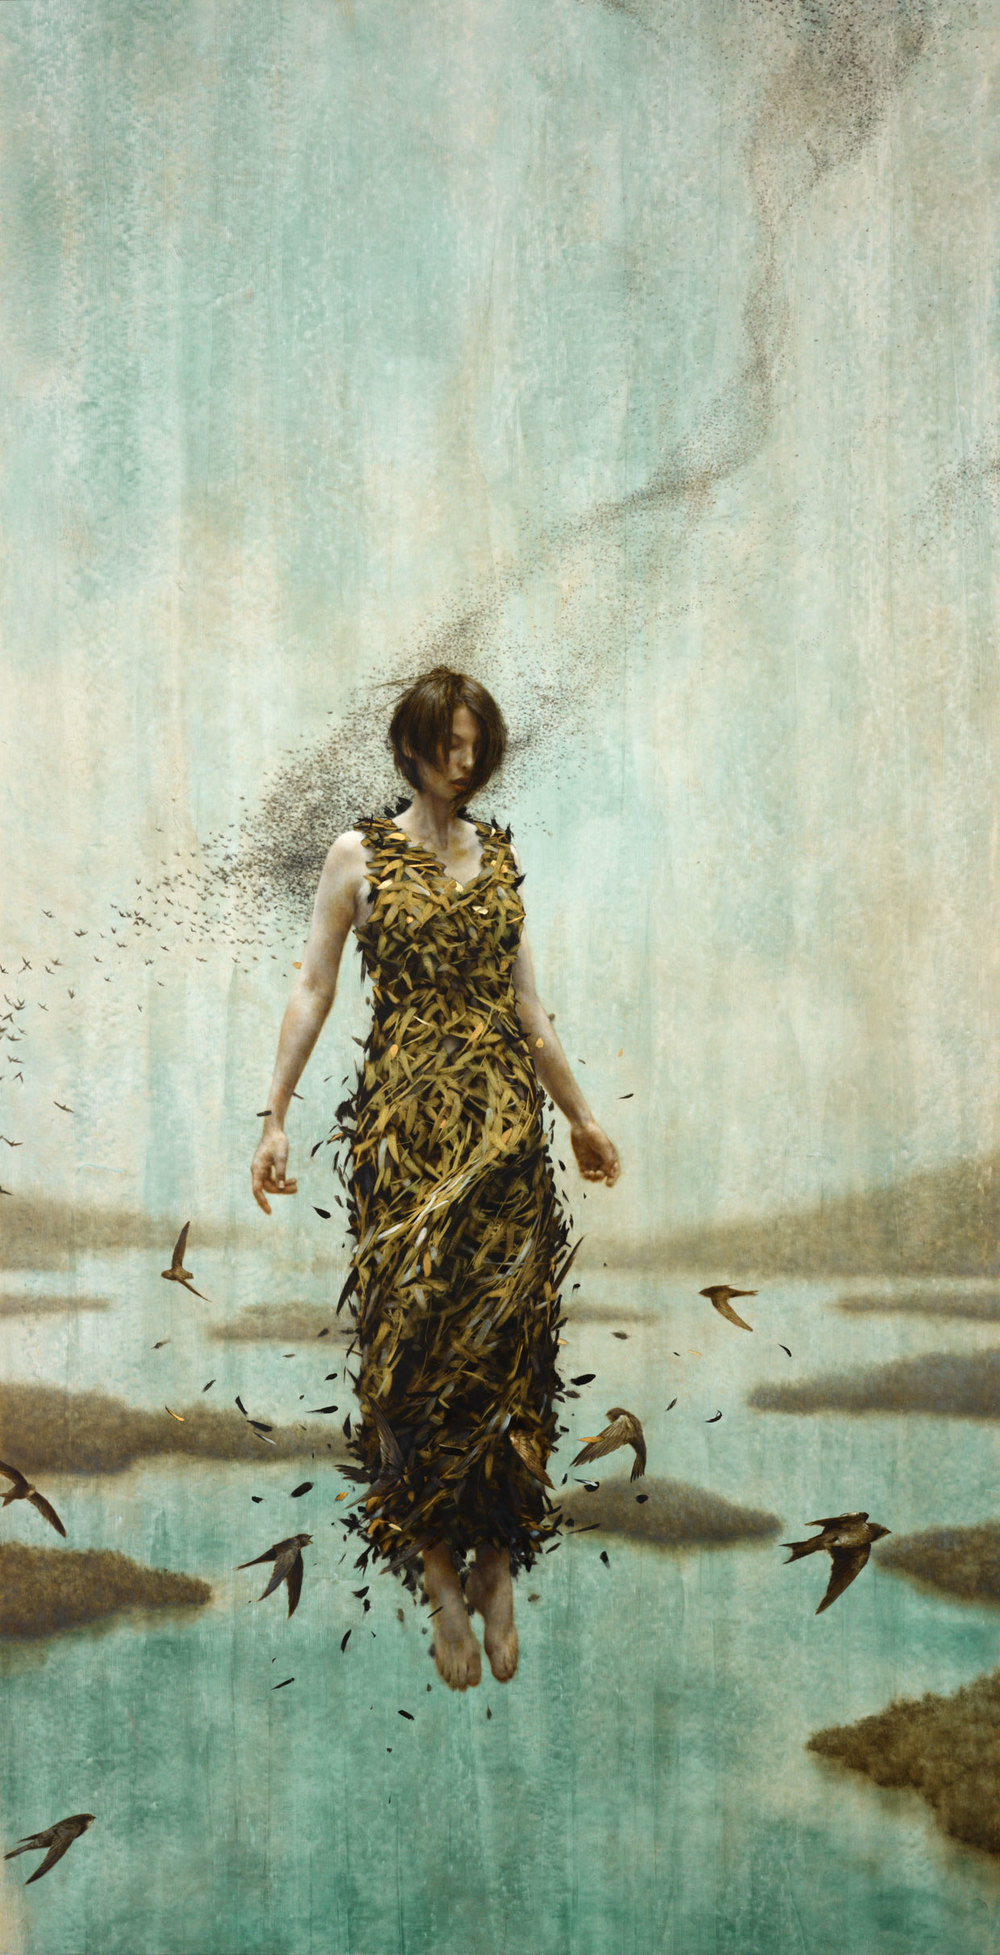 Over The Ocean , 2013. Oil and gold on linen. 70 x 36 inches. Private collection.